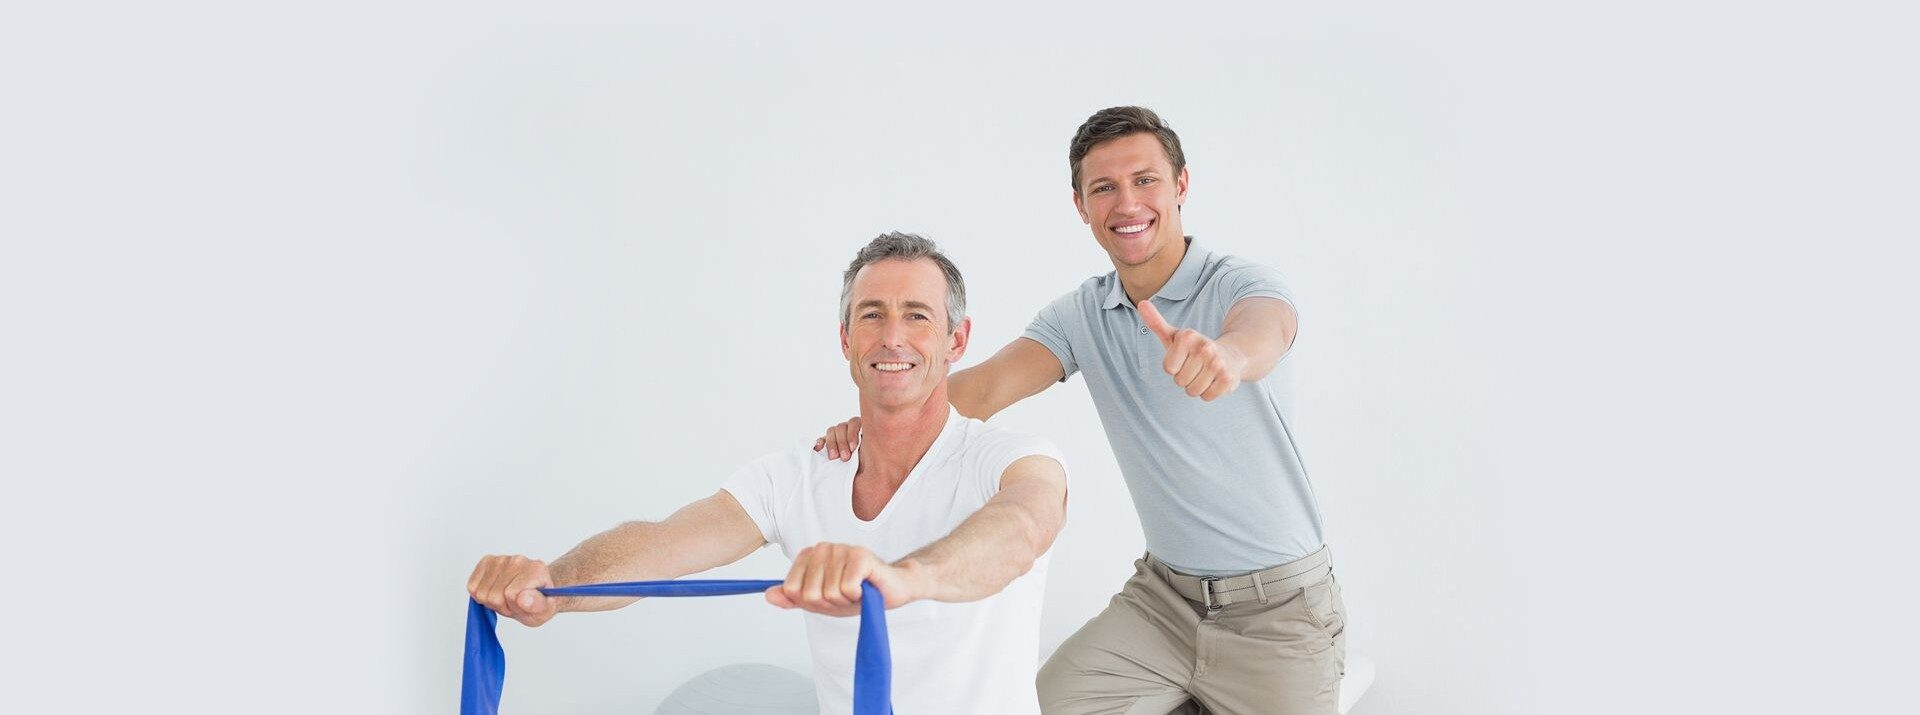 Providing the highest standard of healthcare in your home. Covered by all major auto insurances.